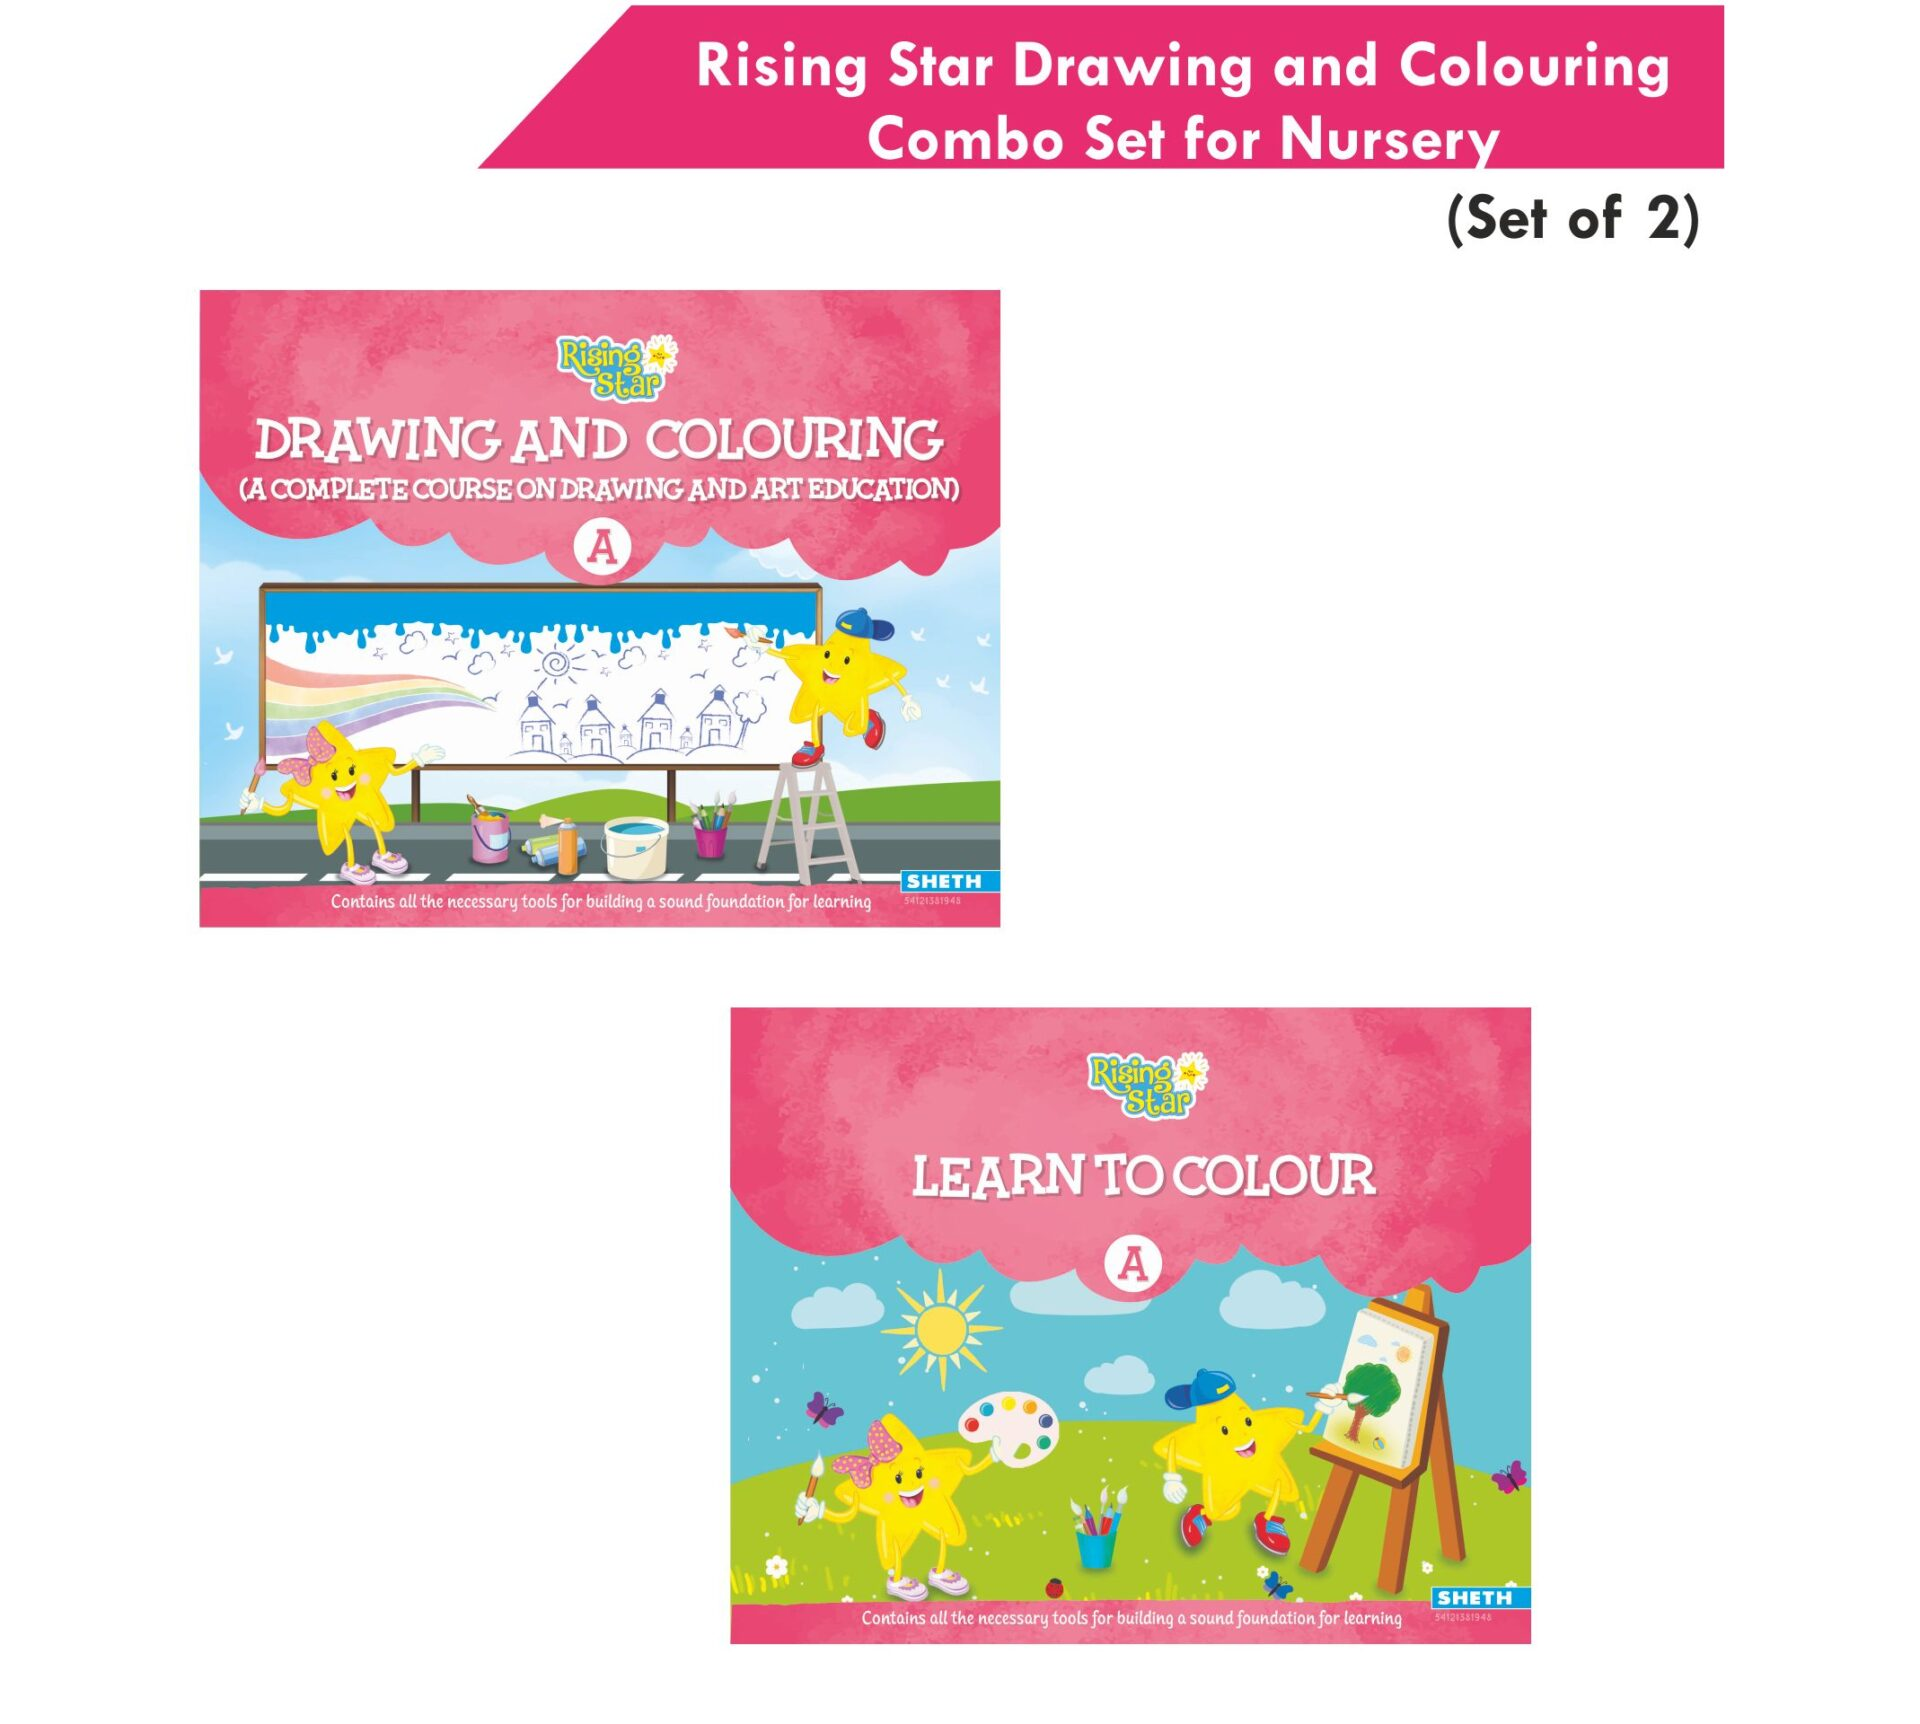 Rising Star Drawing and Colouring Combo Set for Nursery Set of 2 1